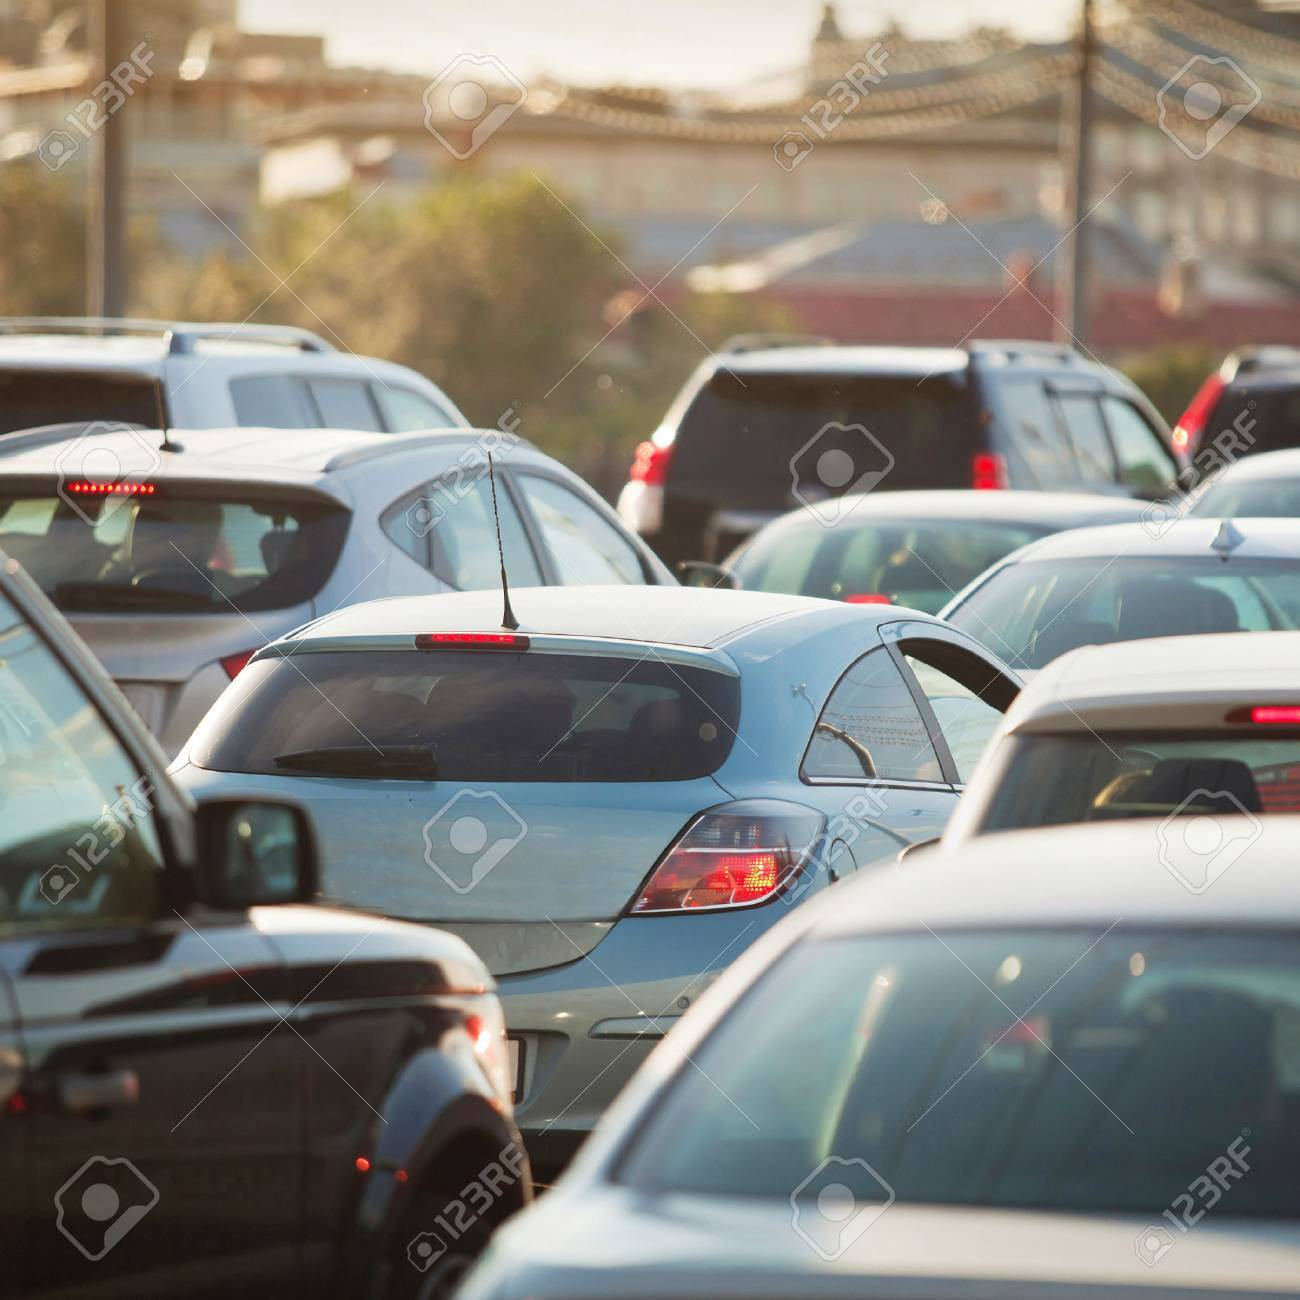 Traffic Jam in rush hour, cars on the road - 53084664